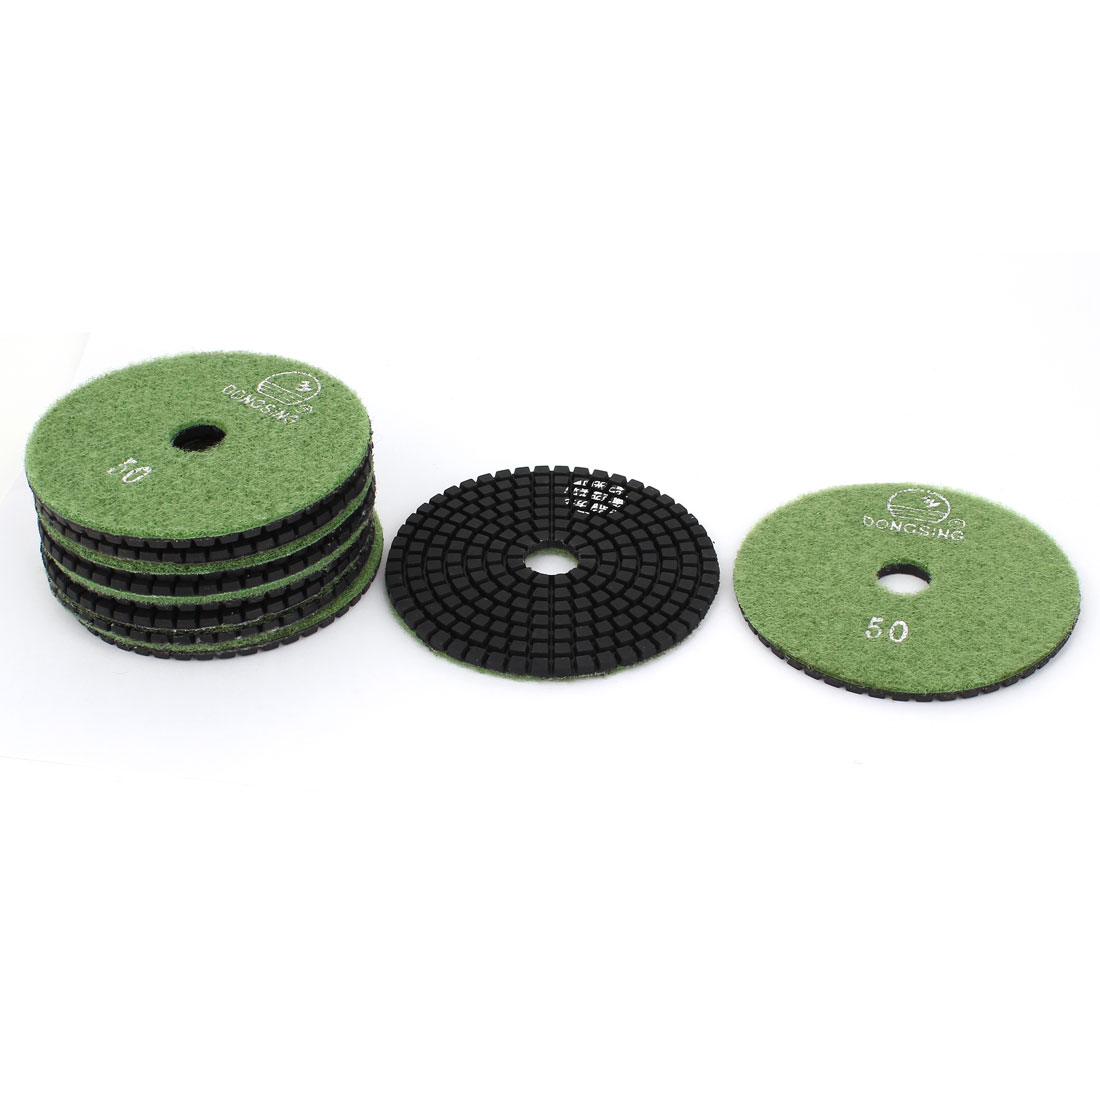 "10pcs 50 Grit 4"" Dia Wet Diamond Polishing Pads Green for Granite Marble"